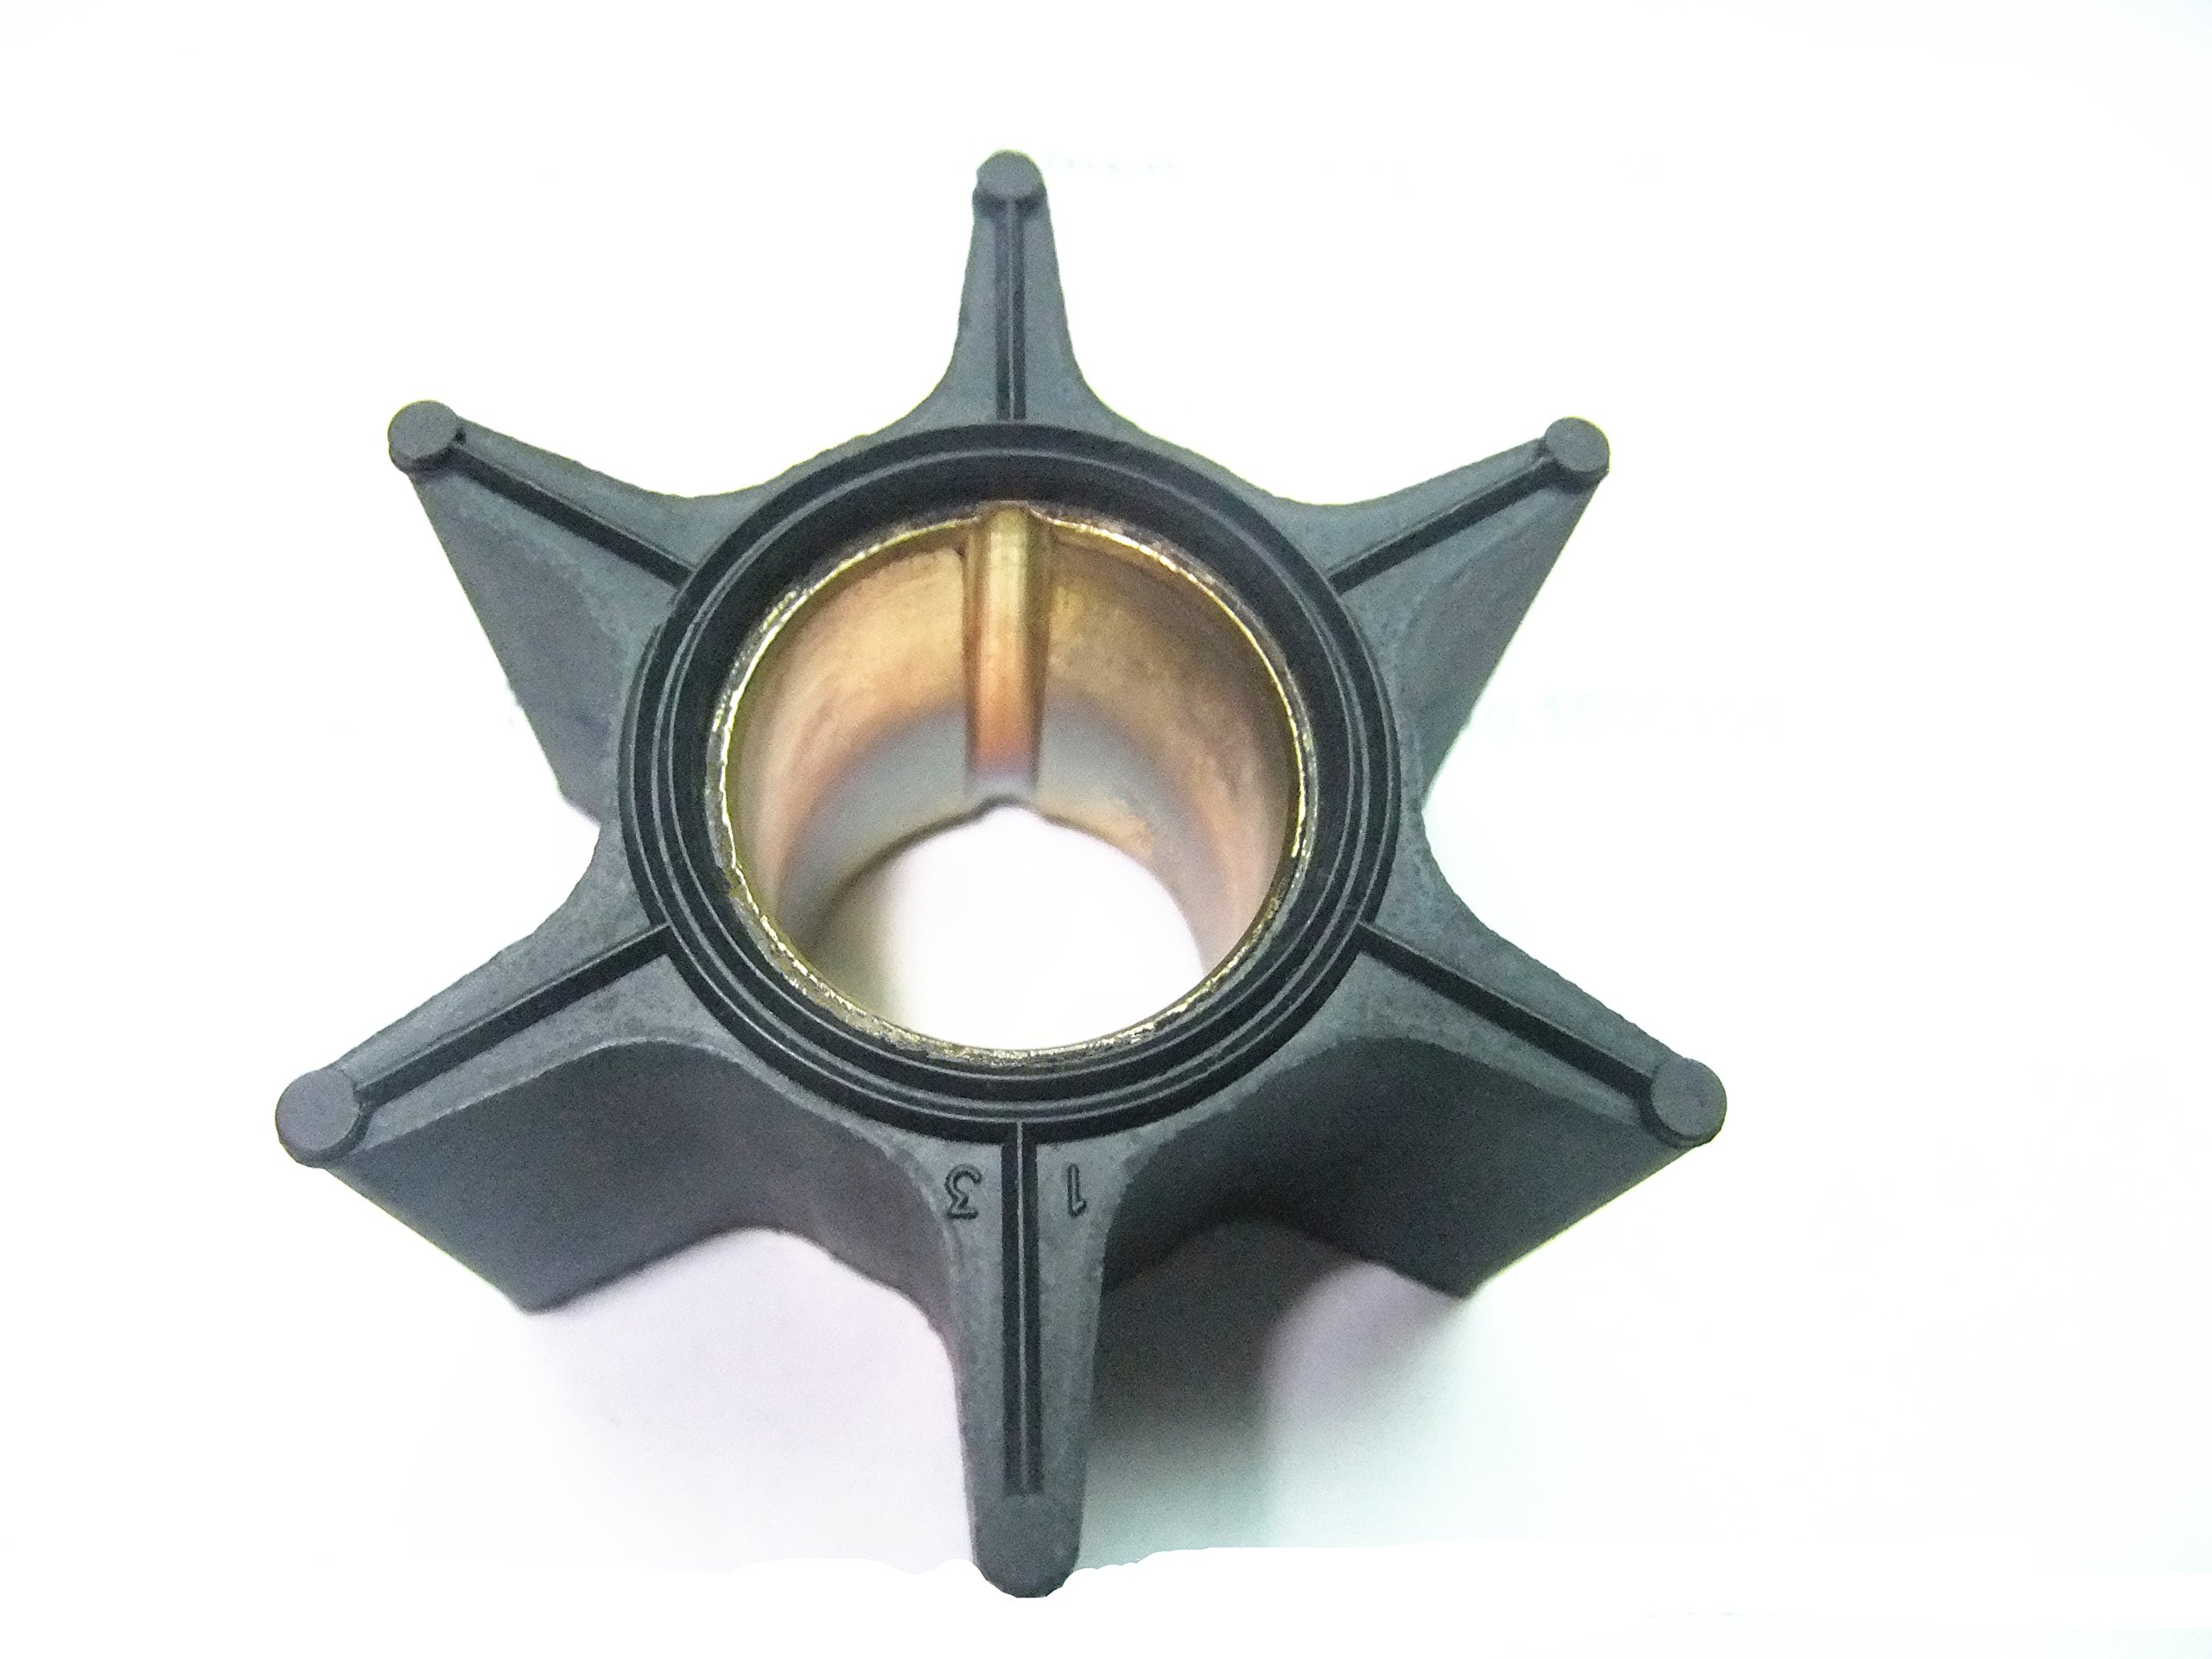 SouthMarine 47-89984 47-89984T4 47-80363 1T 47-F694065 47-30221 18-3017 Boat Engine Impeller for Mercury Mercruiser 75-225hp Outboard Motors by SouthMarine